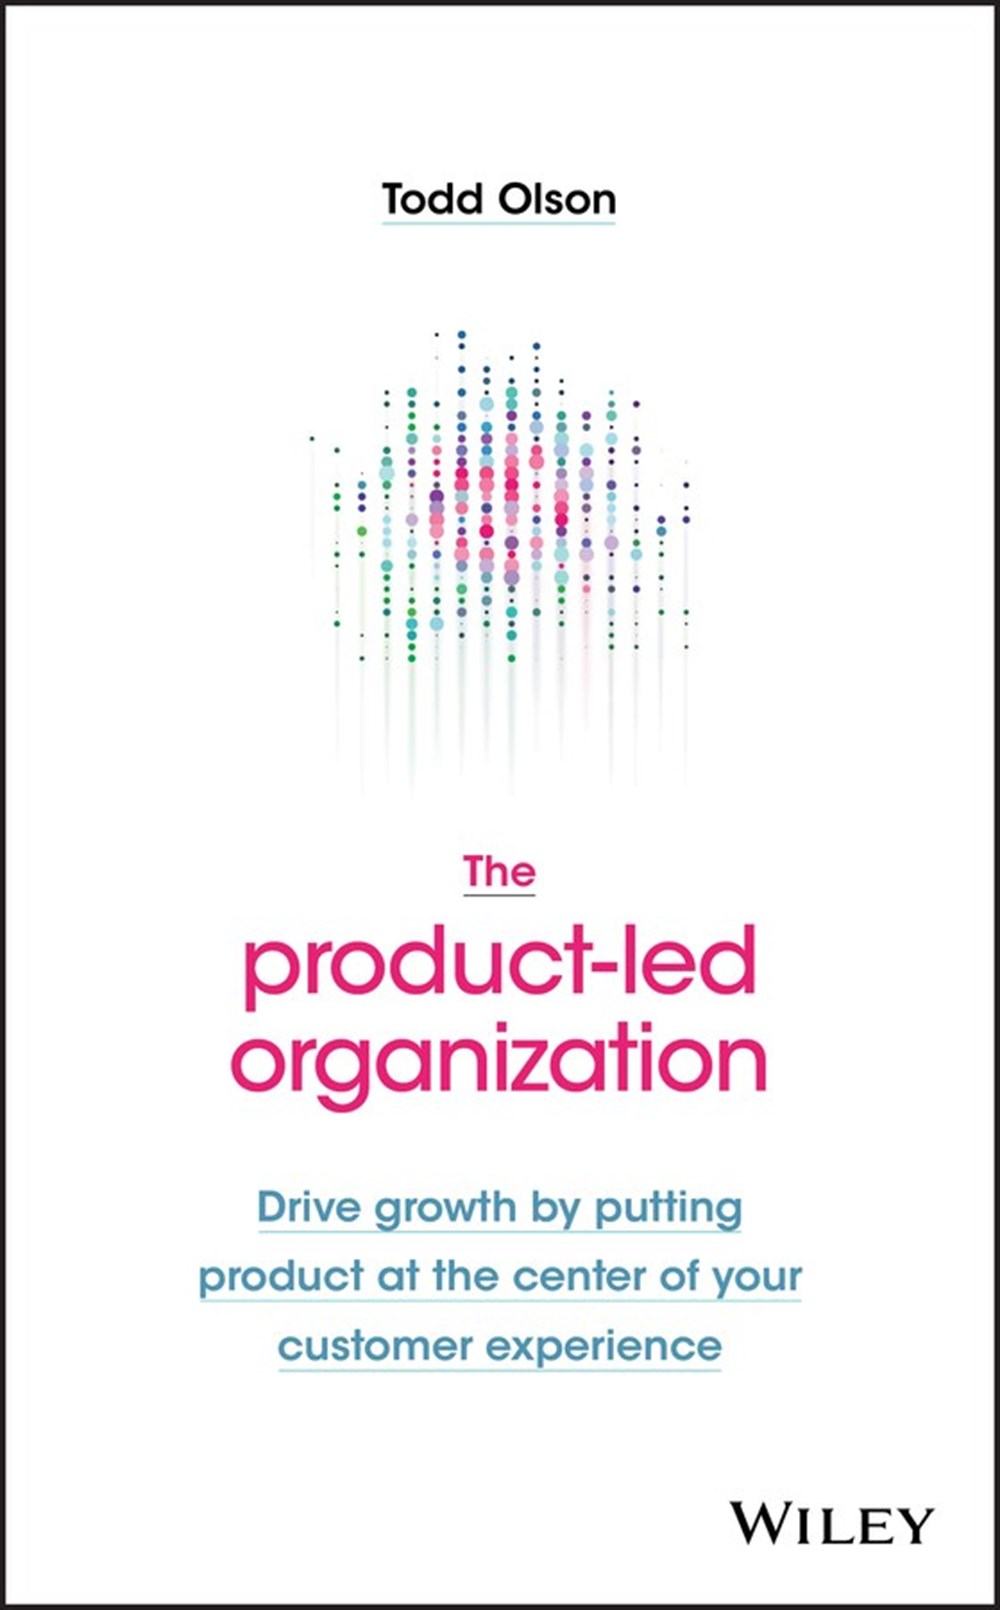 Product-Led Organization Drive Growth by Putting Product at the Center of Your Customer Experience